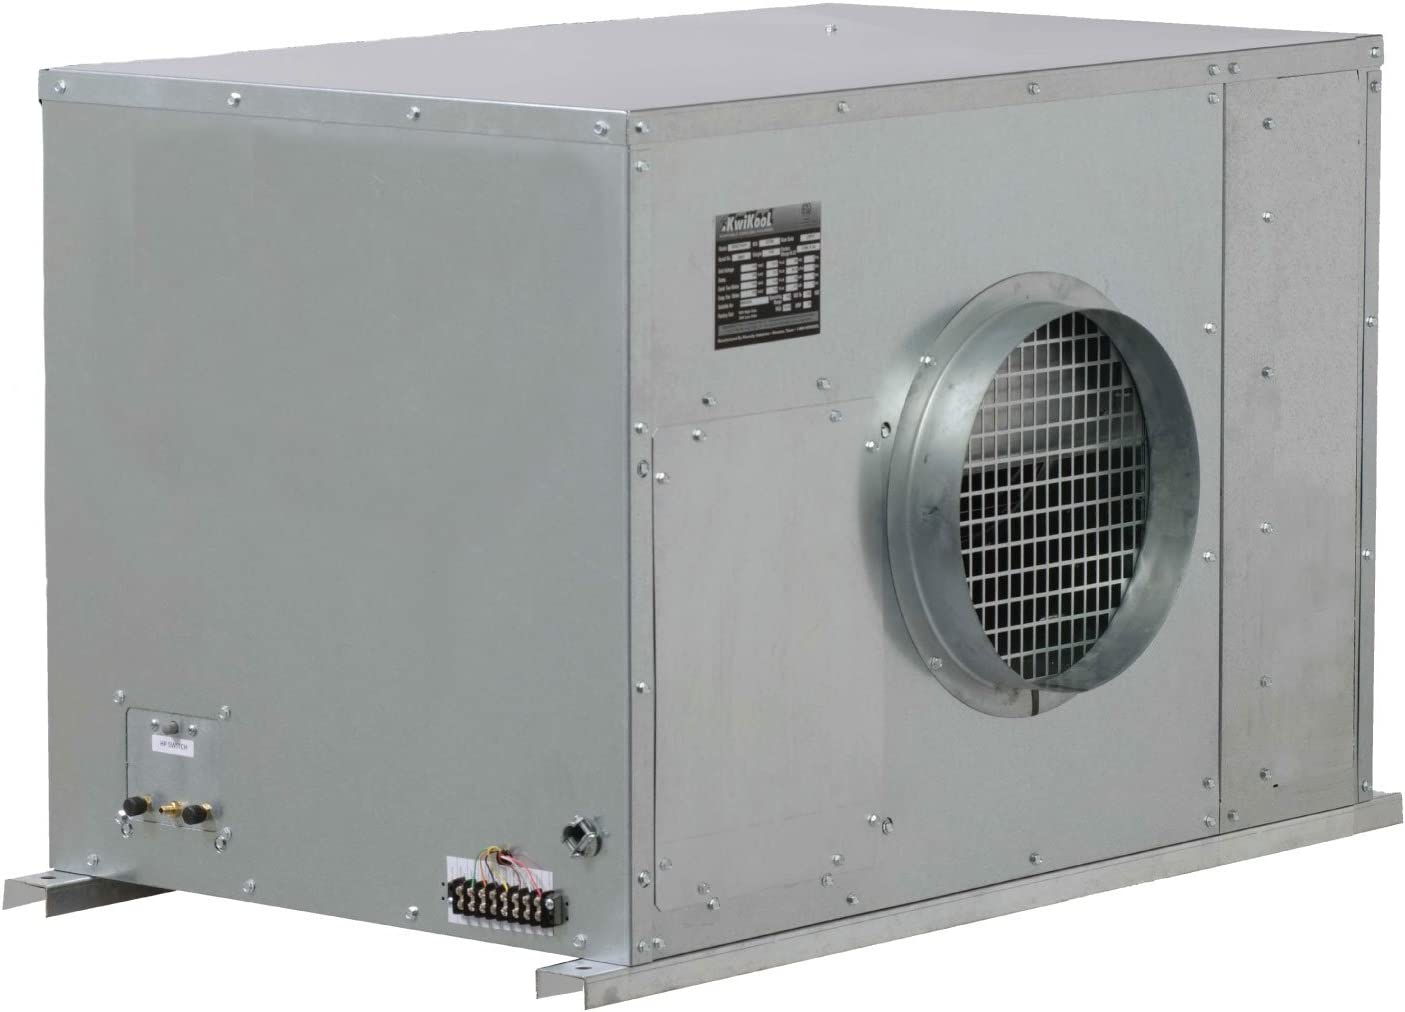 B06Y1JKFP3 KwiKool KCW4221 Water-Cooled Ceiling Mounted Air Conditioner 61v8NspWa4L.SL1500_